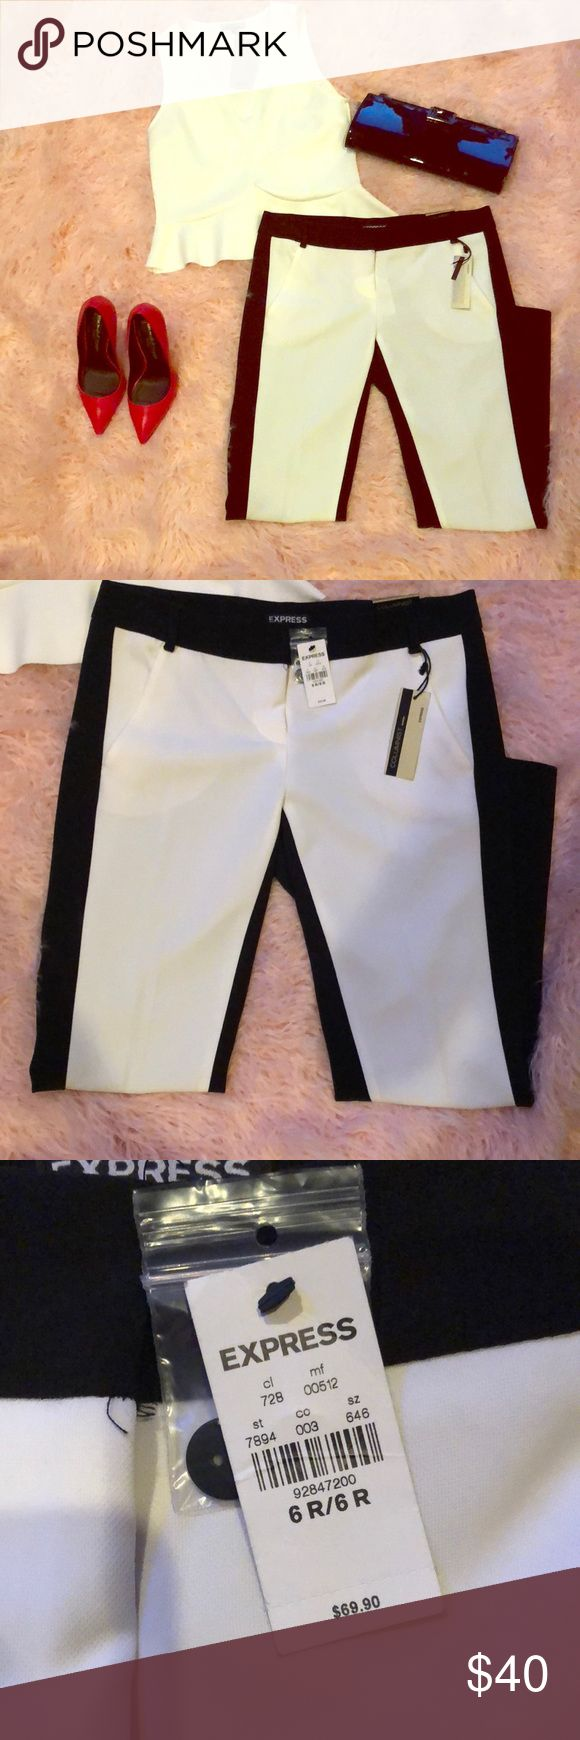 Express black and white slacks Unique and stylish slacks.  Express black and white slacks size 6R.  Columnist, low rise, ankle fitted through hip and thigh. New with tags Express Pants Ankle & Cropped